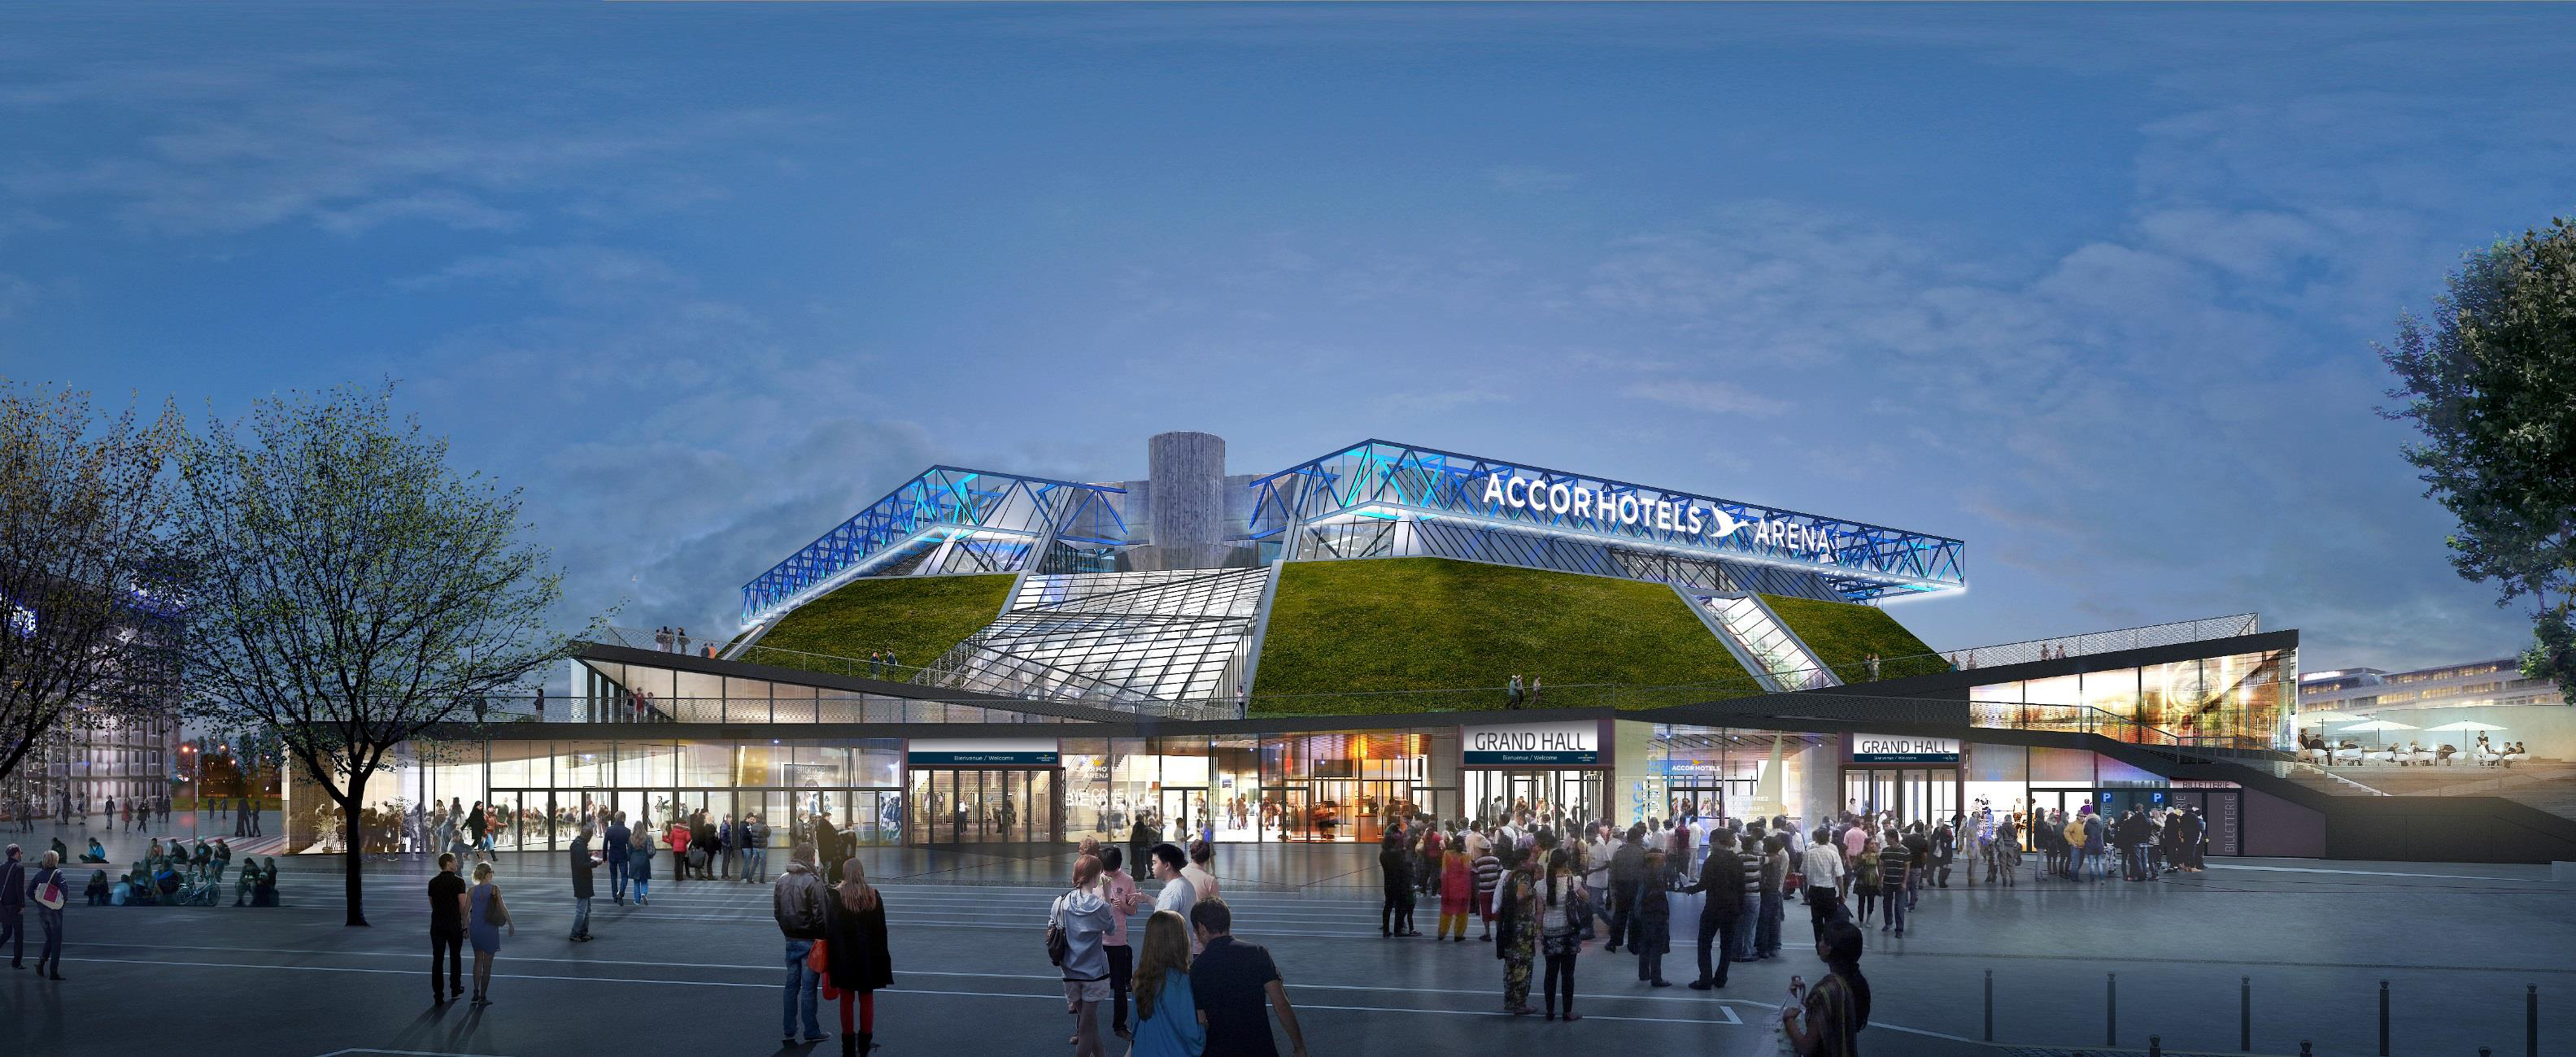 Accorhotels Signs 10 Year Naming Rights Agreement For The Bercy Arena Paris